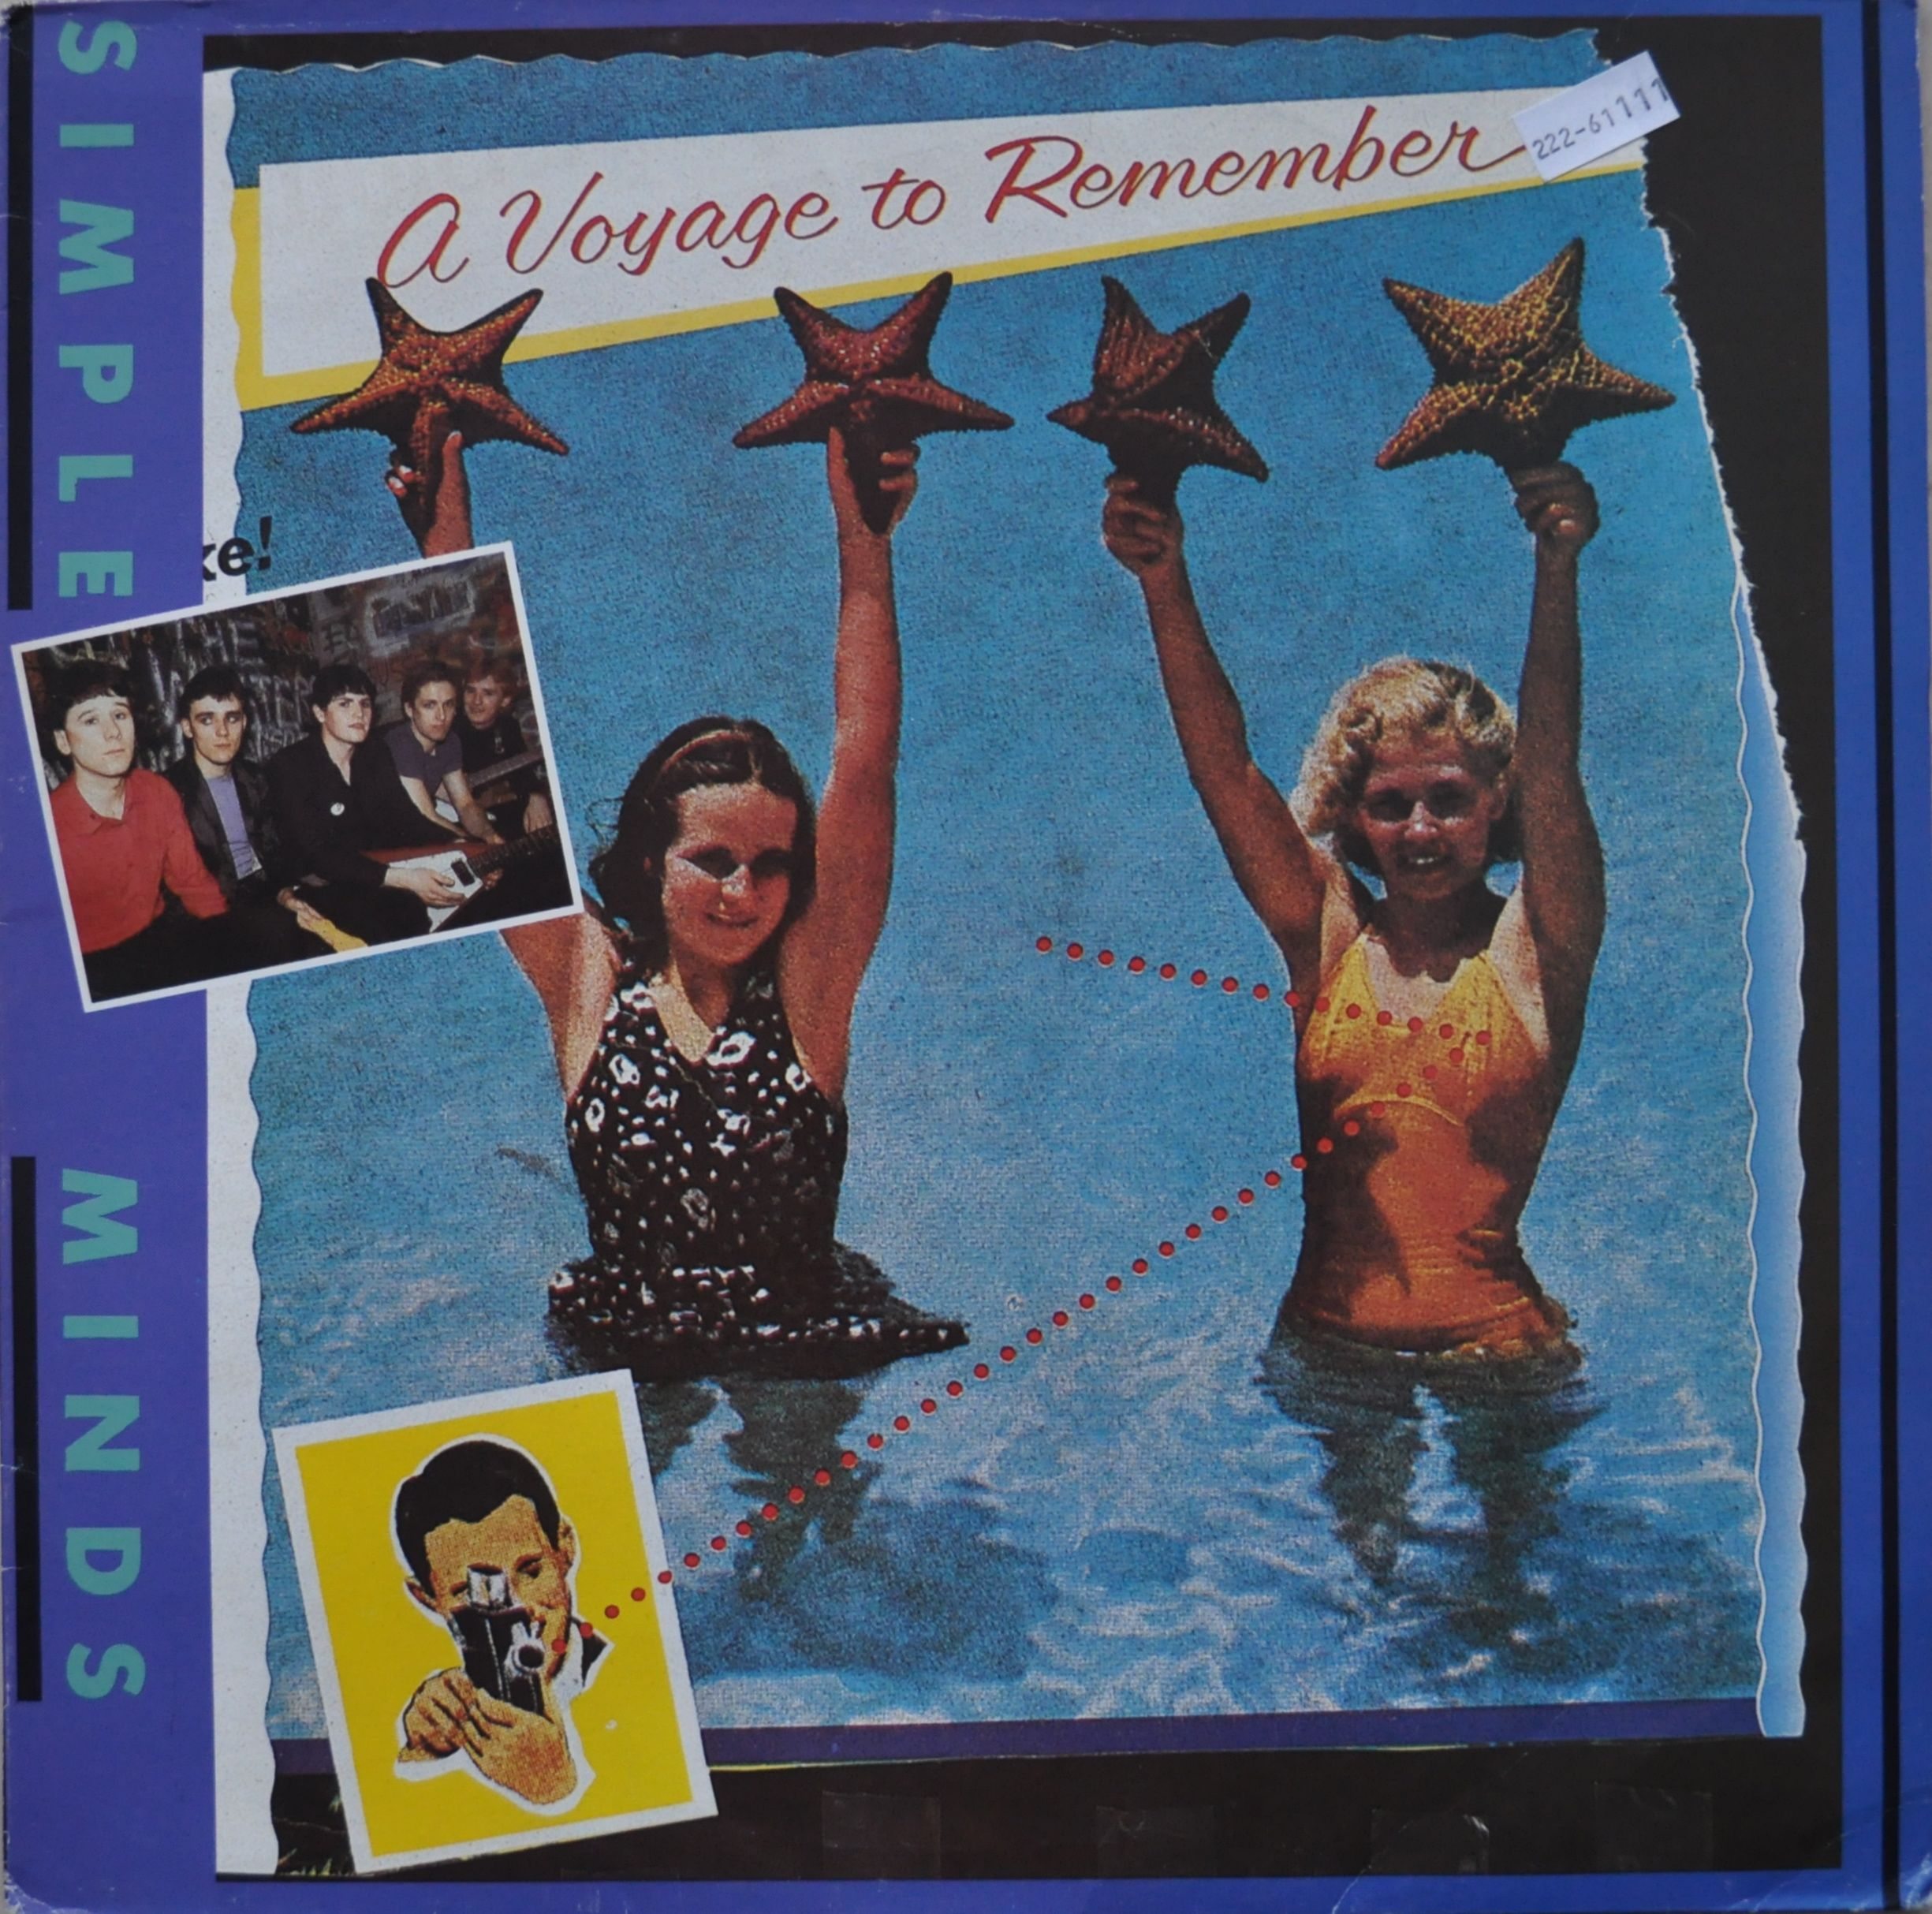 A Voyage To Remember - LP (33 tours) (ref: Mixeye Records 82-0220)